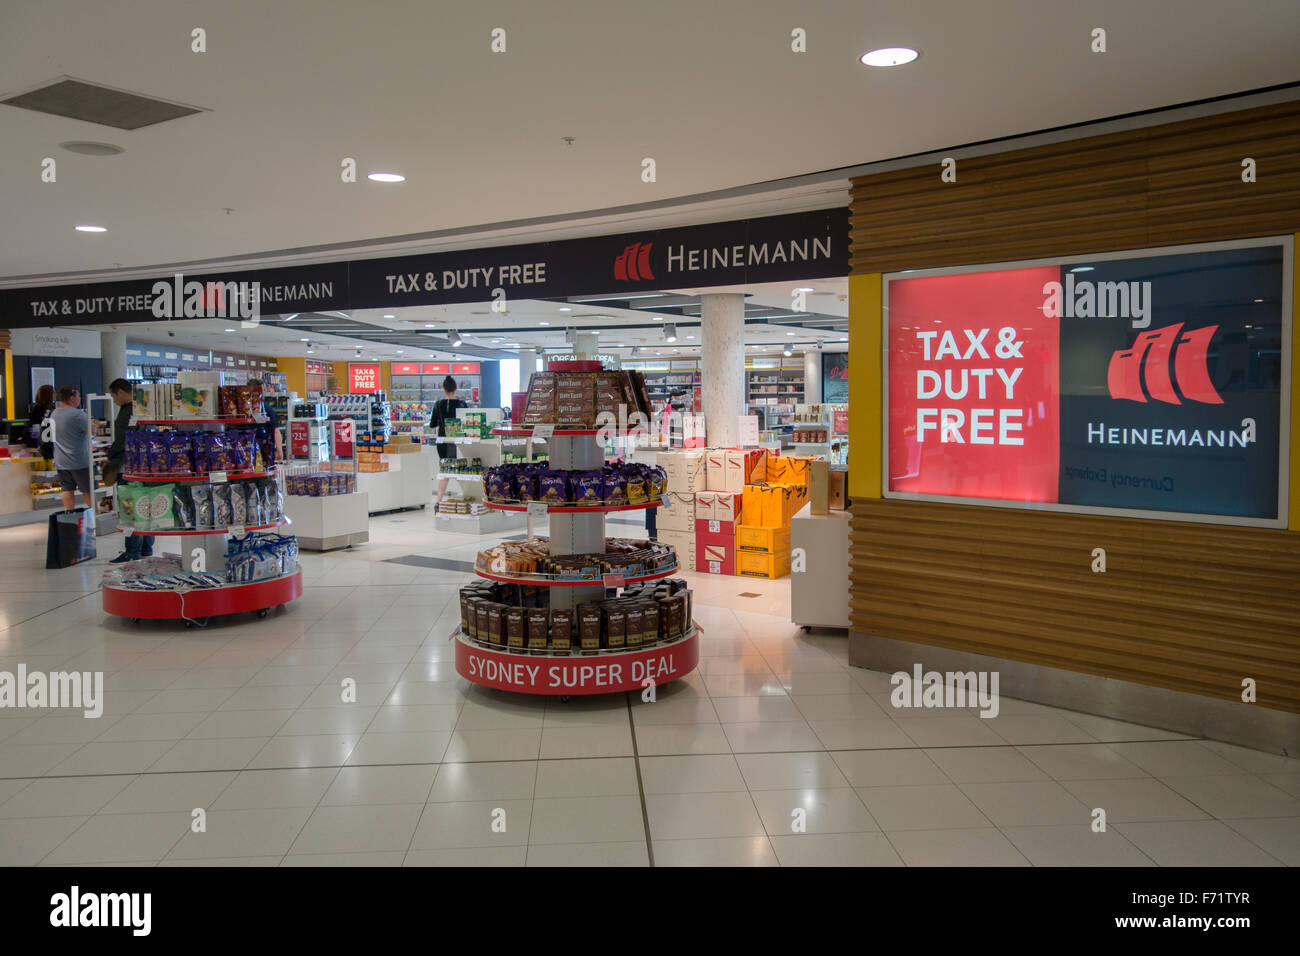 Sydney Airport Shops Tax Duty Free Shop Inside Sydney Airport Stock Photo 90395979 Alamy